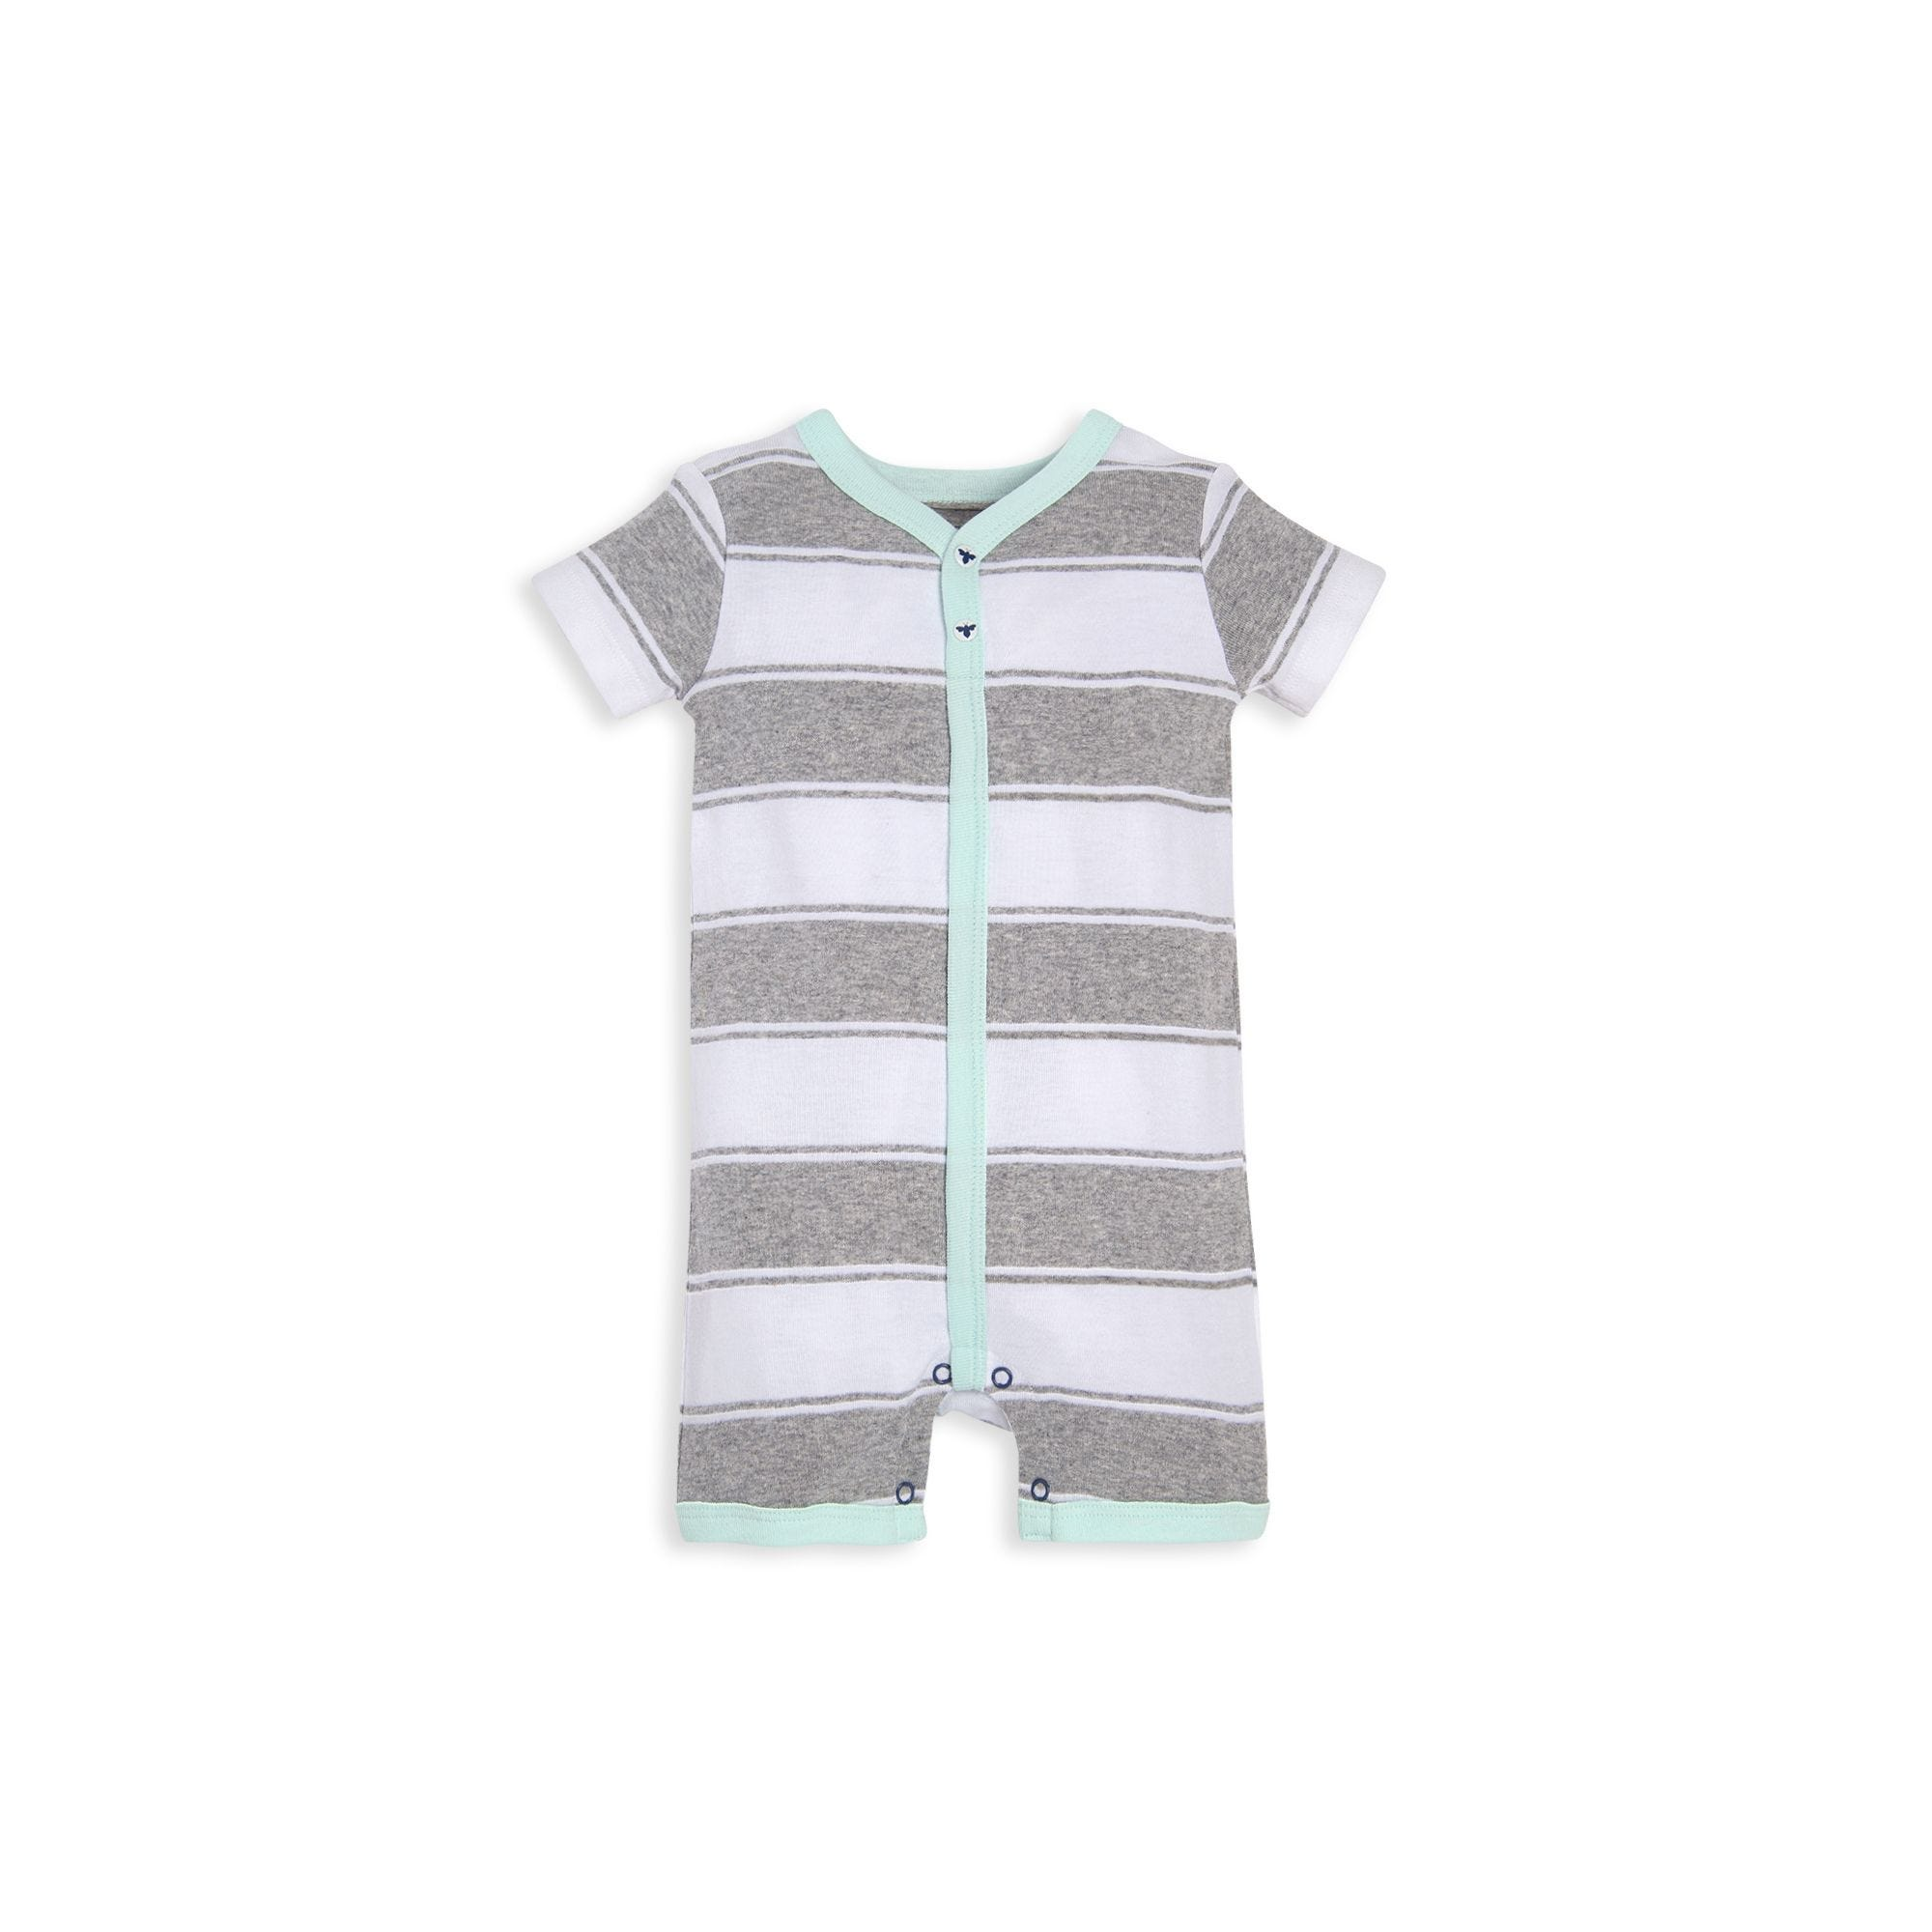 068c15cb5660 Organic Cotton 2 Pack Rugby Peace Stripe Shortall Set